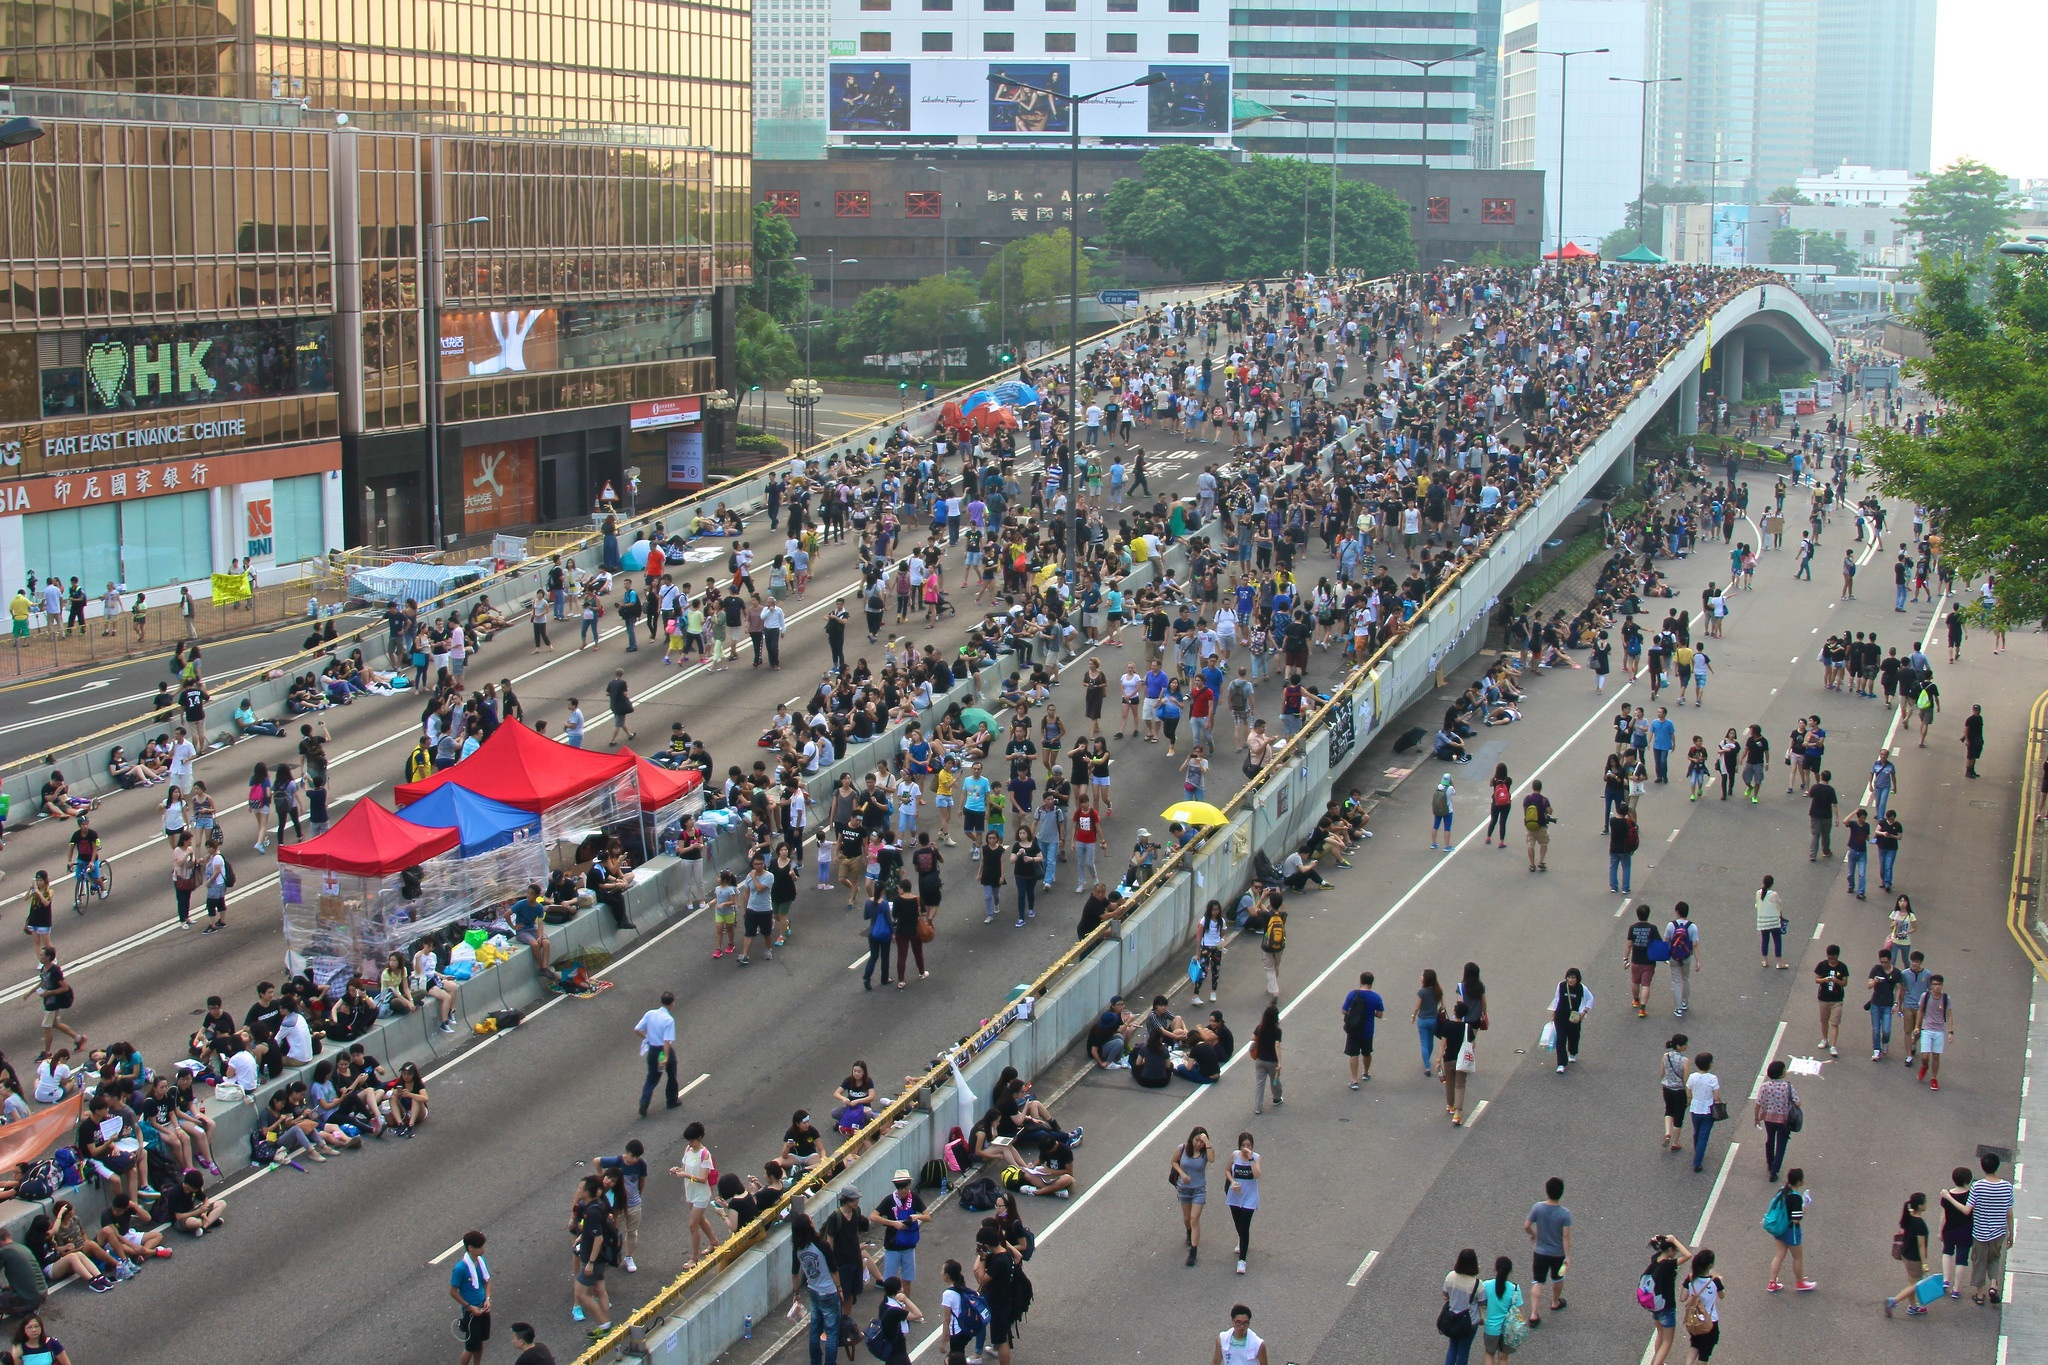 Hong Kong: The Future of People Power?